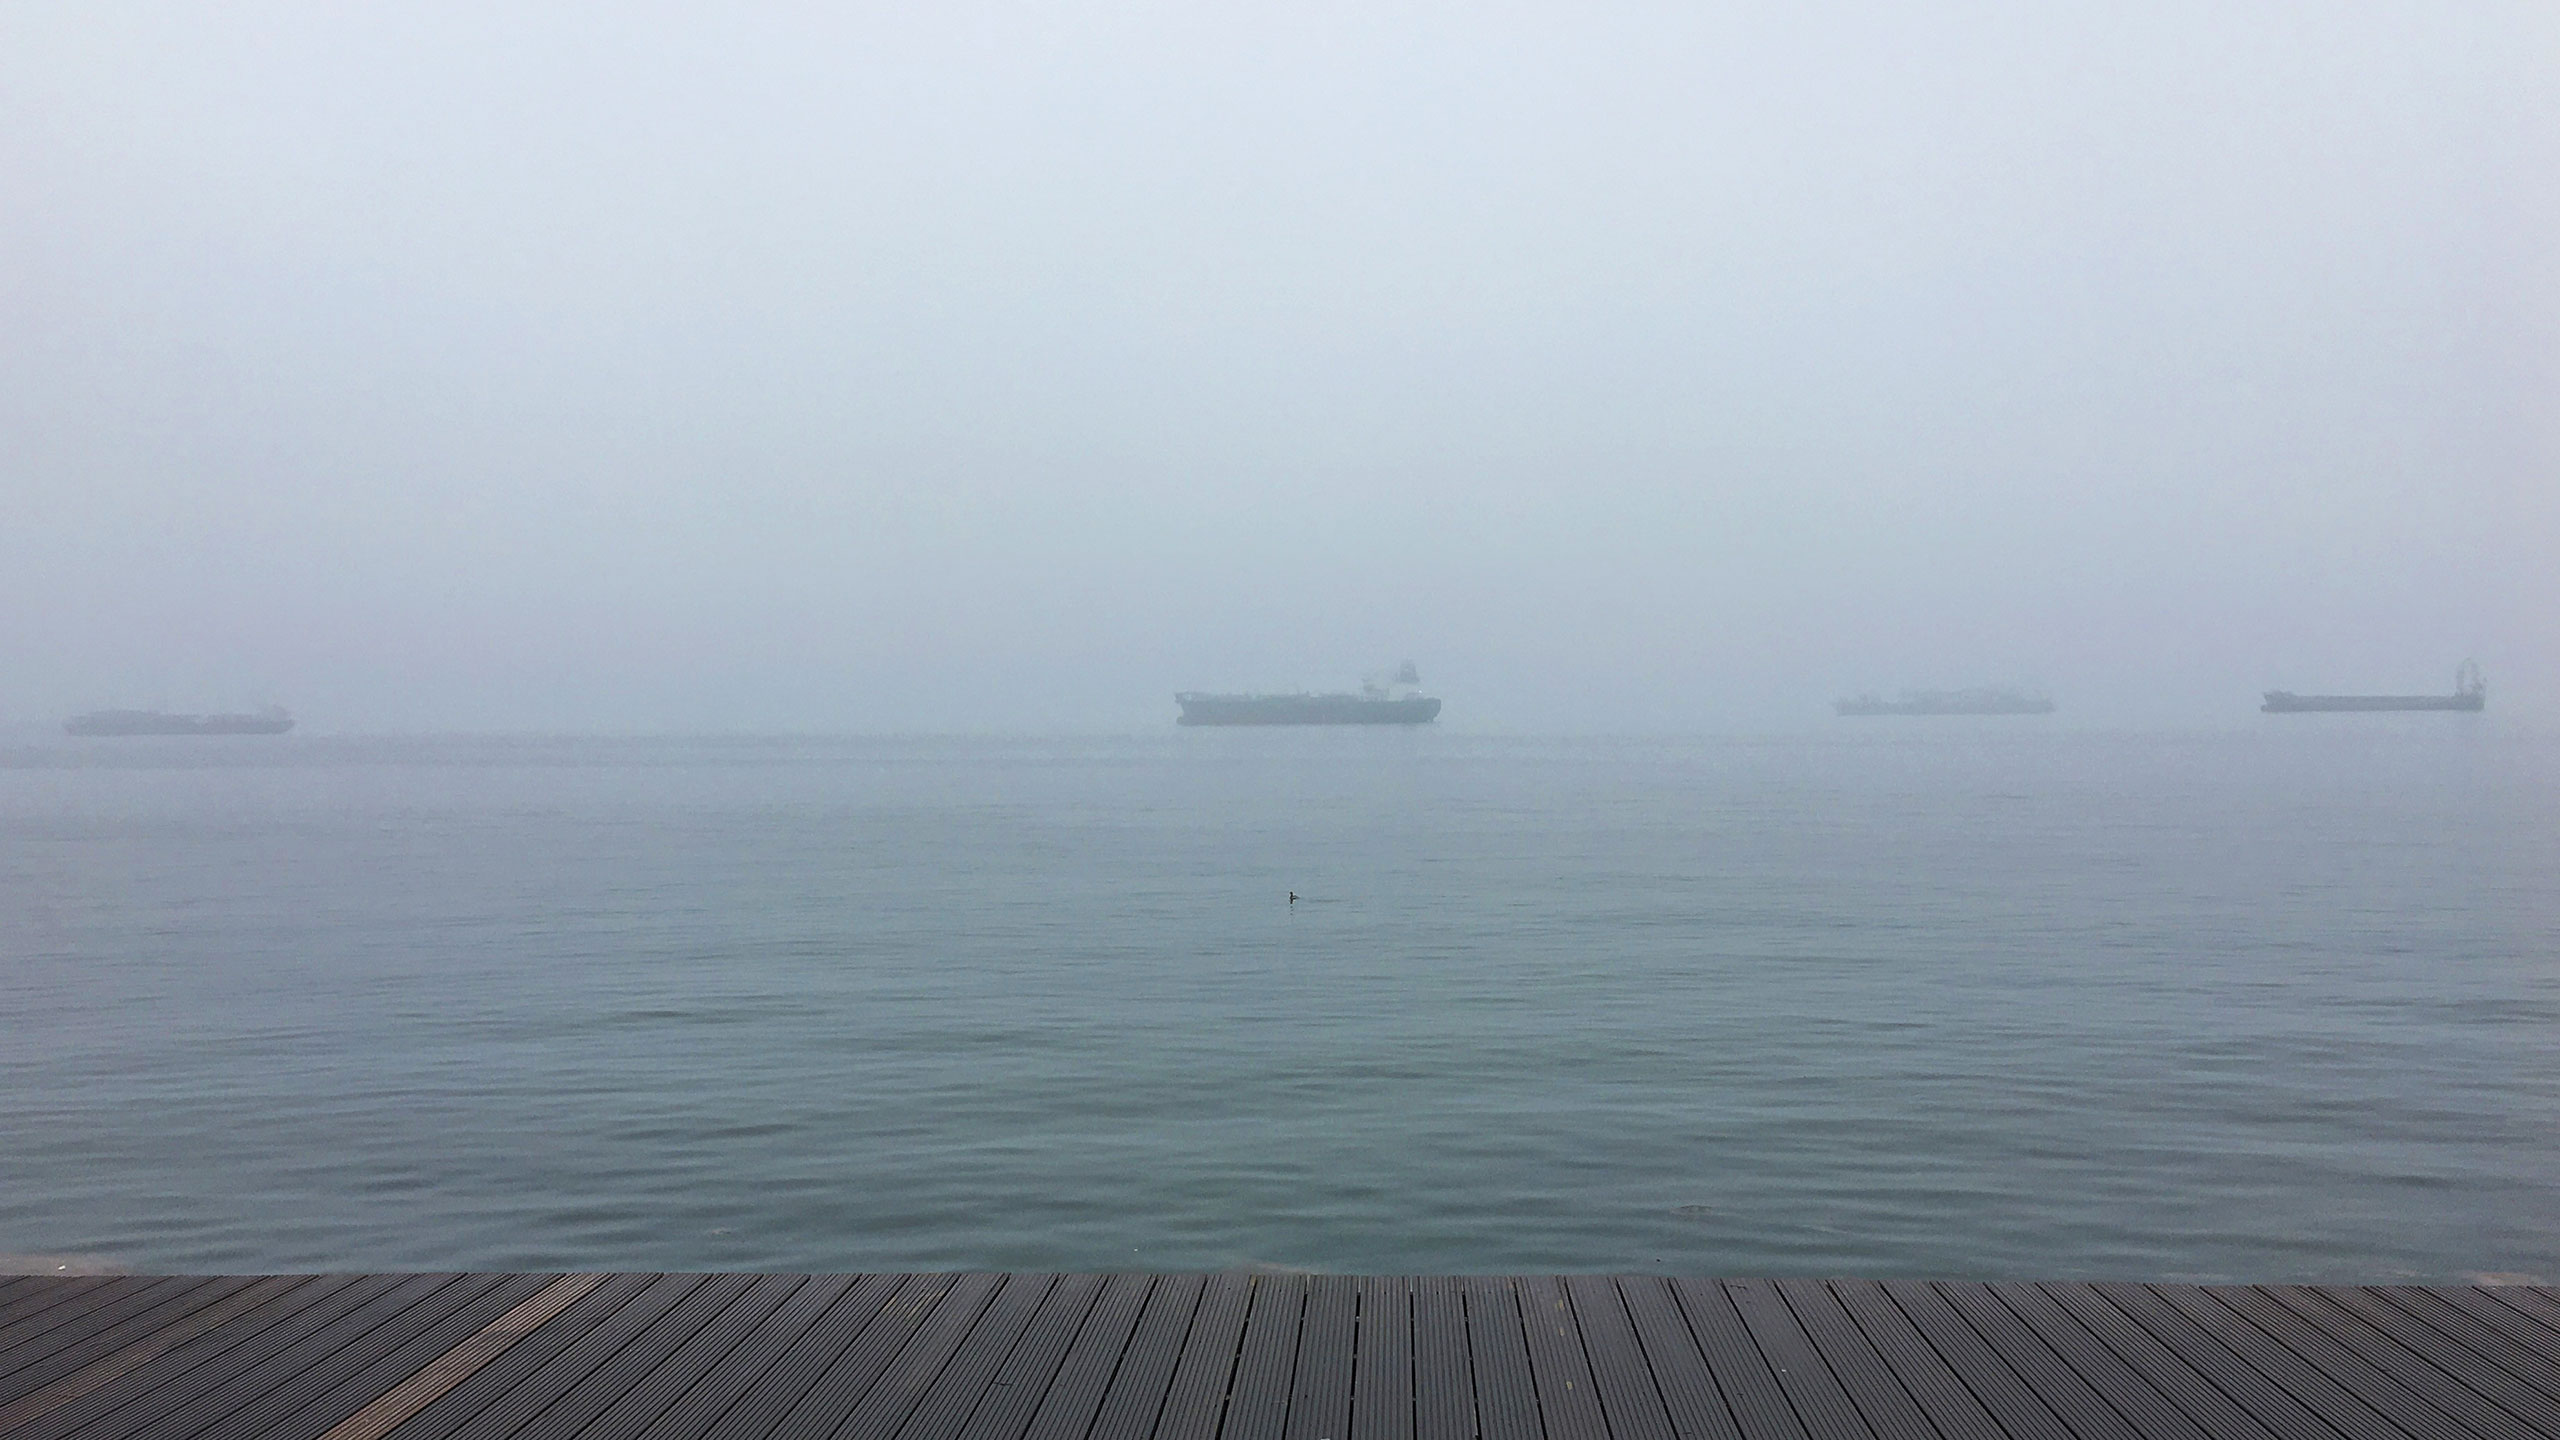 Container ships in a foggy bay.